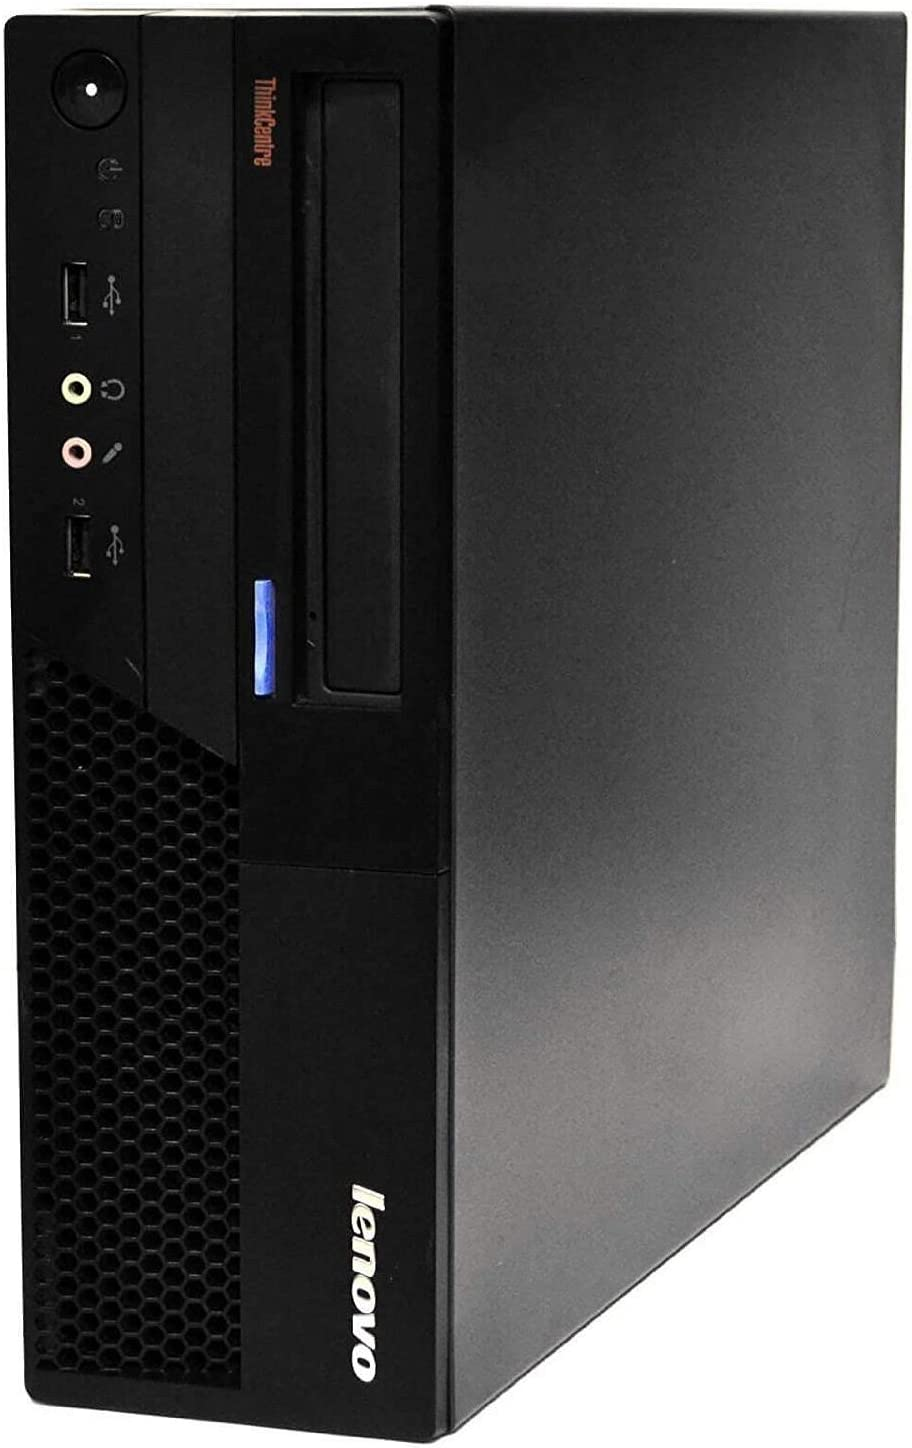 Lenovo ThinkCentre M58 Business Desktop Computer with Intel Core 2 Duo 3.0GHz Processor, 4GB-RAM, 320GB HDD, DVD, Gigabit Ethernet, VGA, Windows 10 Home (Renewed)